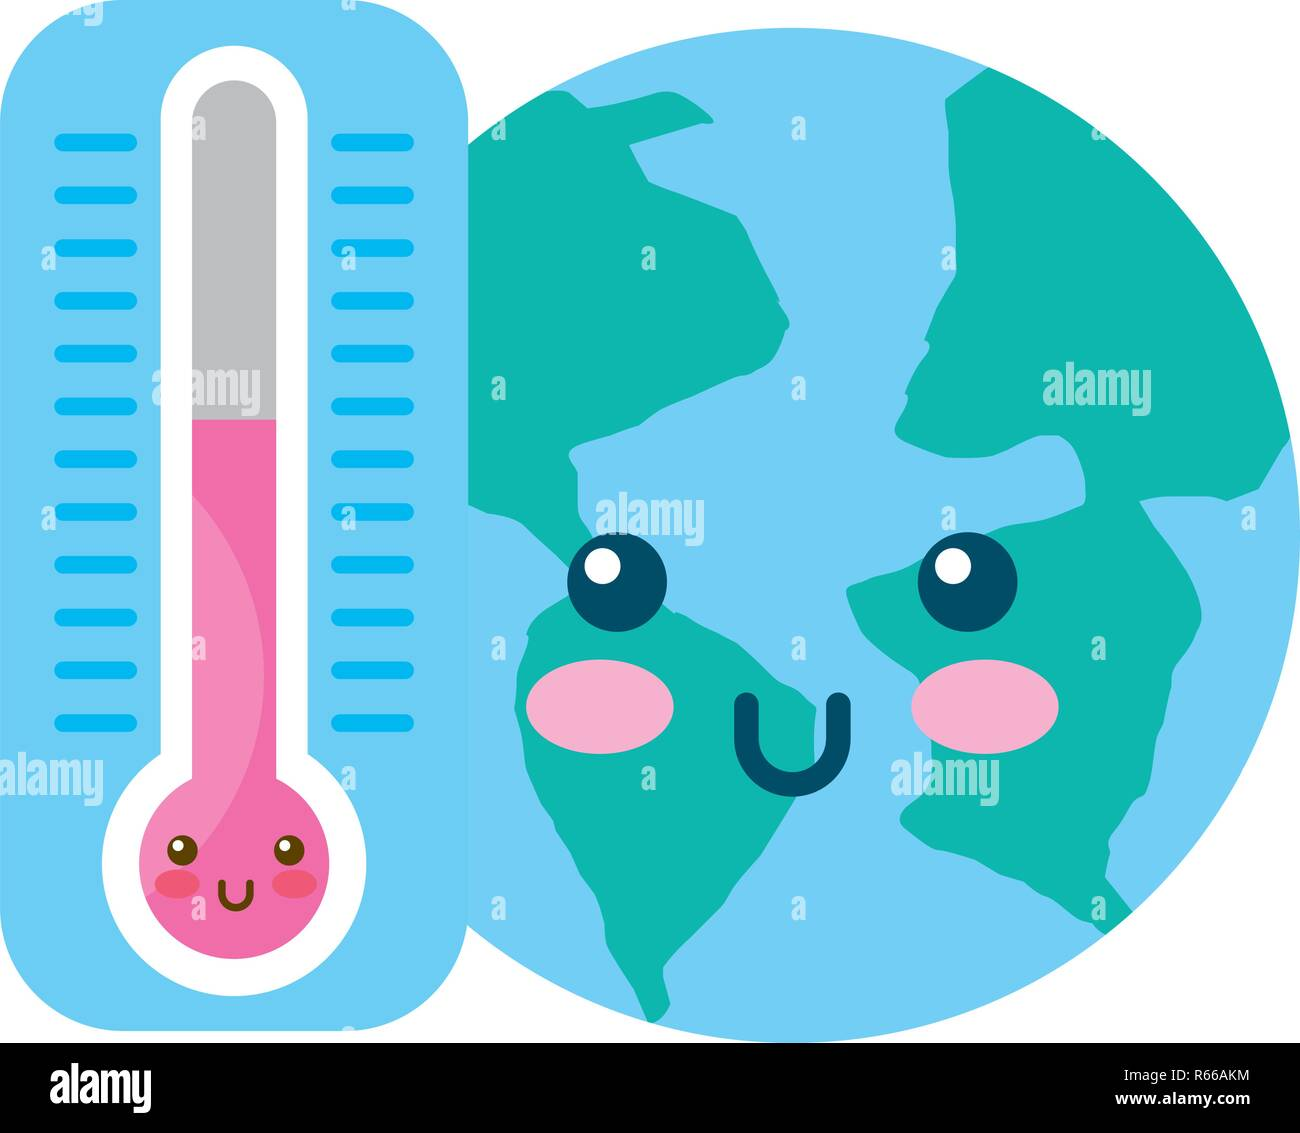 Kawaii World And Thermometer Cartoon Stock Vector Image Art Alamy Descubre la mejor forma de comprar online. https www alamy com kawaii world and thermometer cartoon image227562824 html